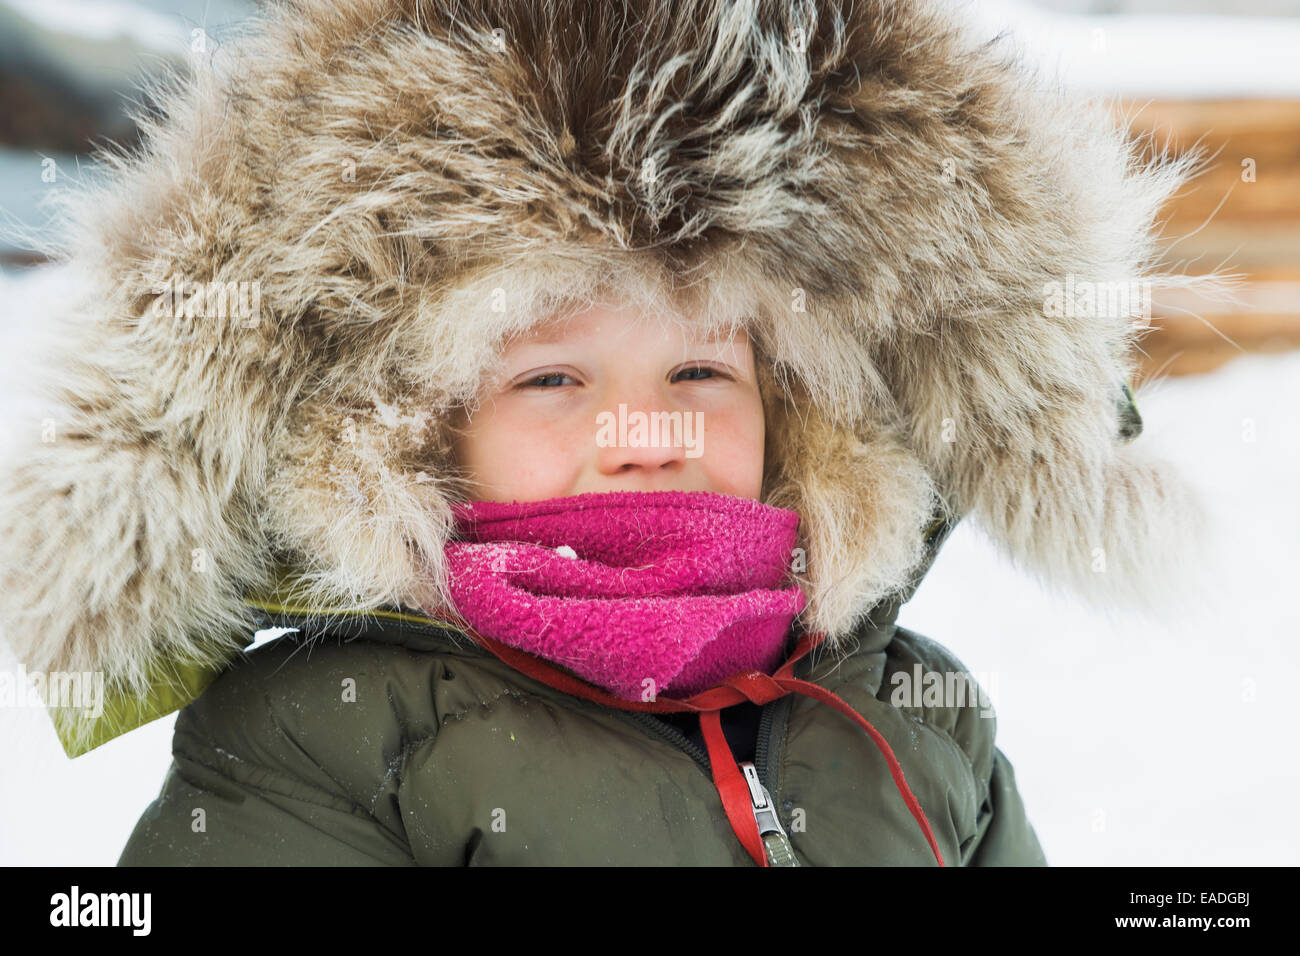 Young boy dressed in a winter parka with a wolf ruff, Wiseman, Arctic Alaska - Stock Image